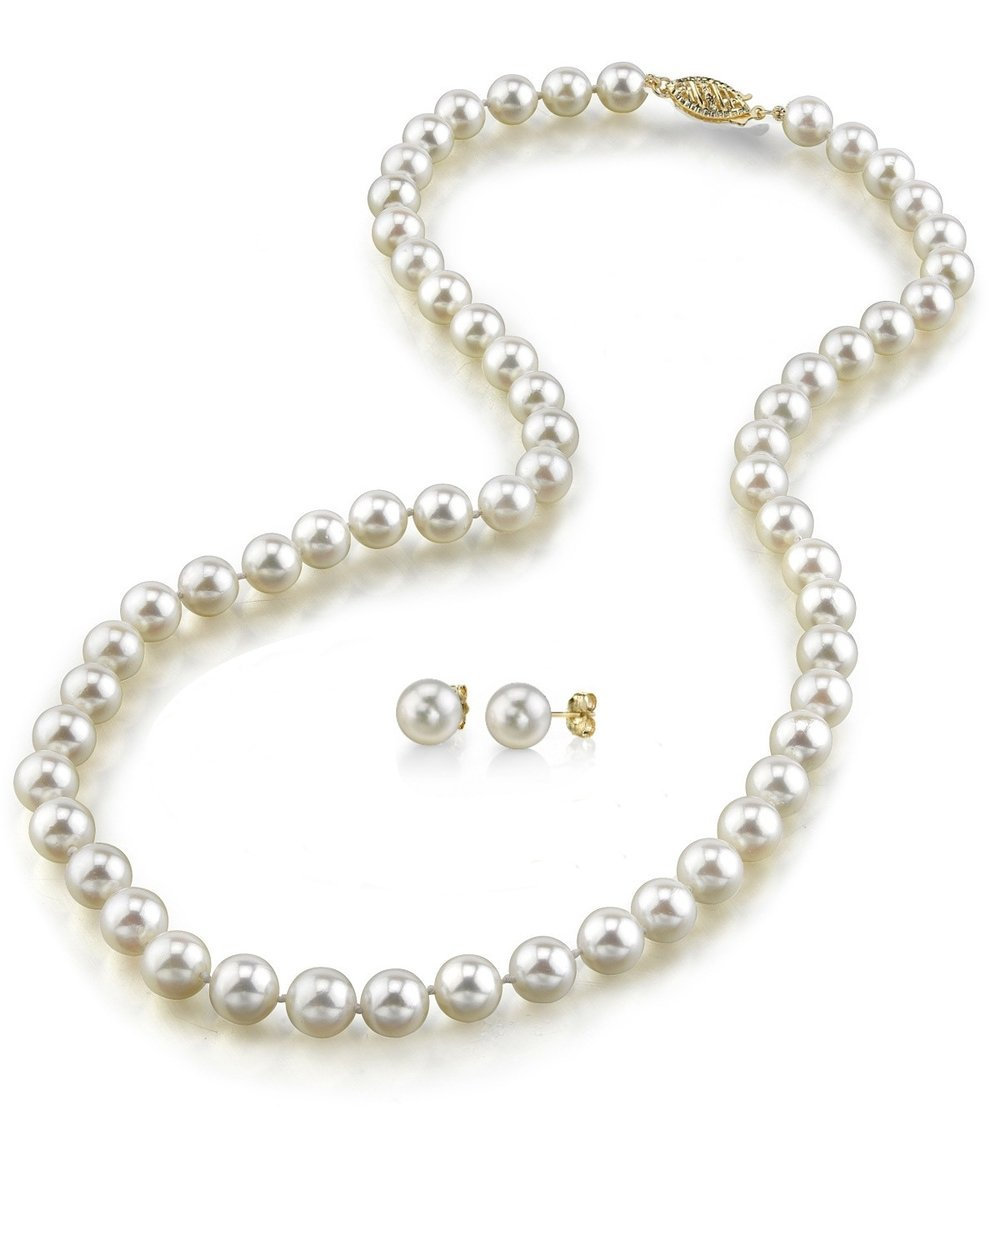 14K Gold 7-8mm White Freshwater Cultured Pearl Necklace & Earrings Set, 17'' Length - AAA Quality